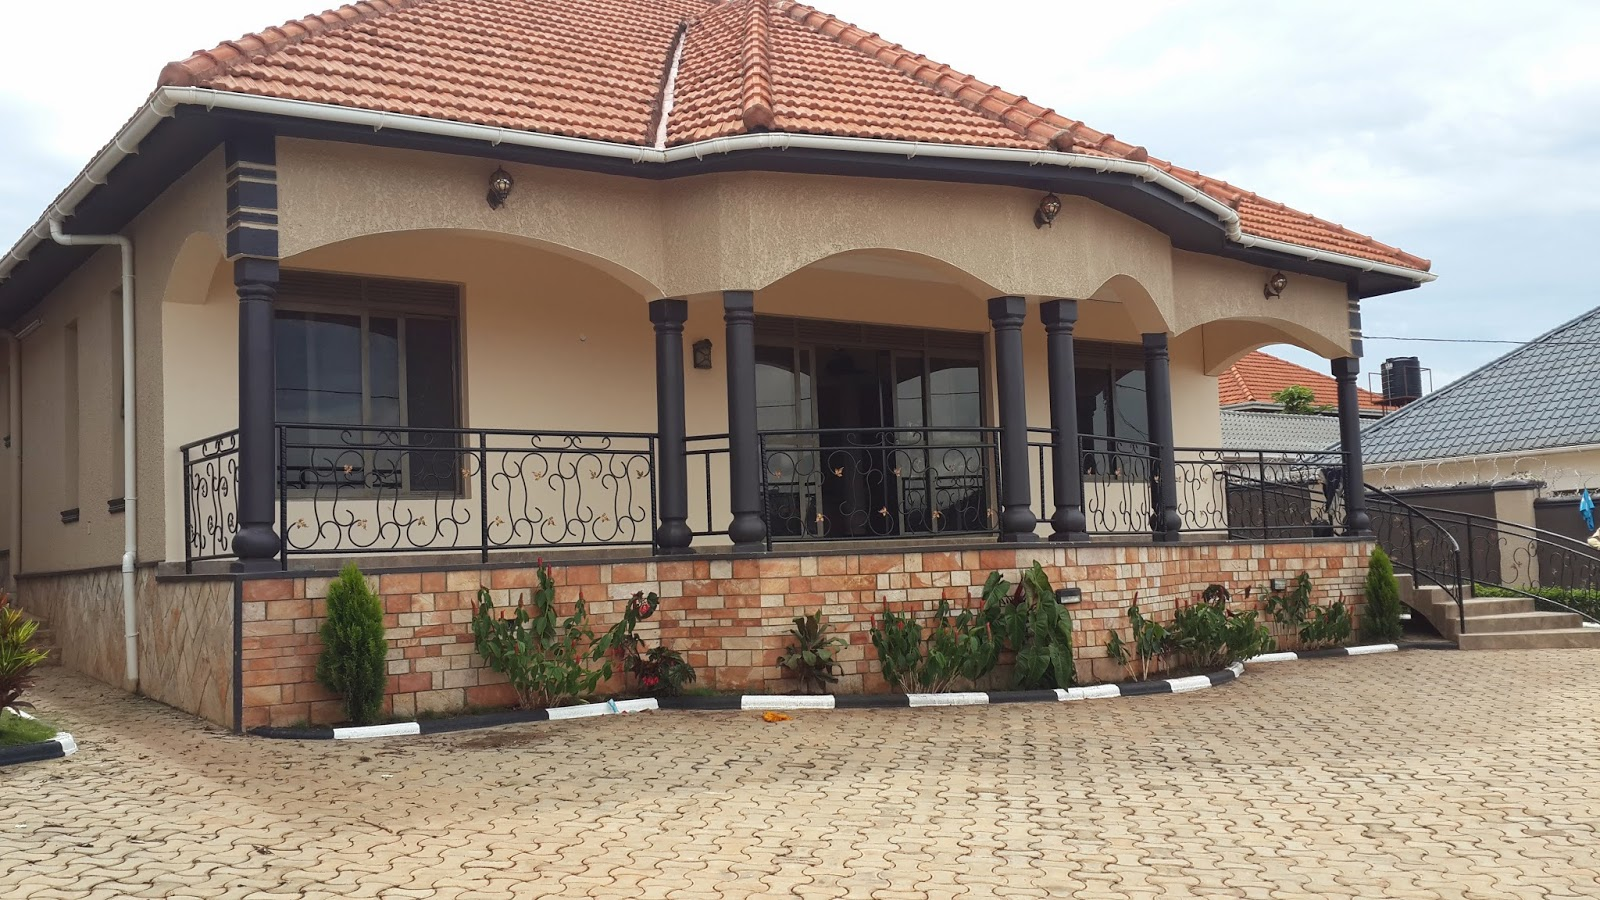 Uganda's housing market gradually improving